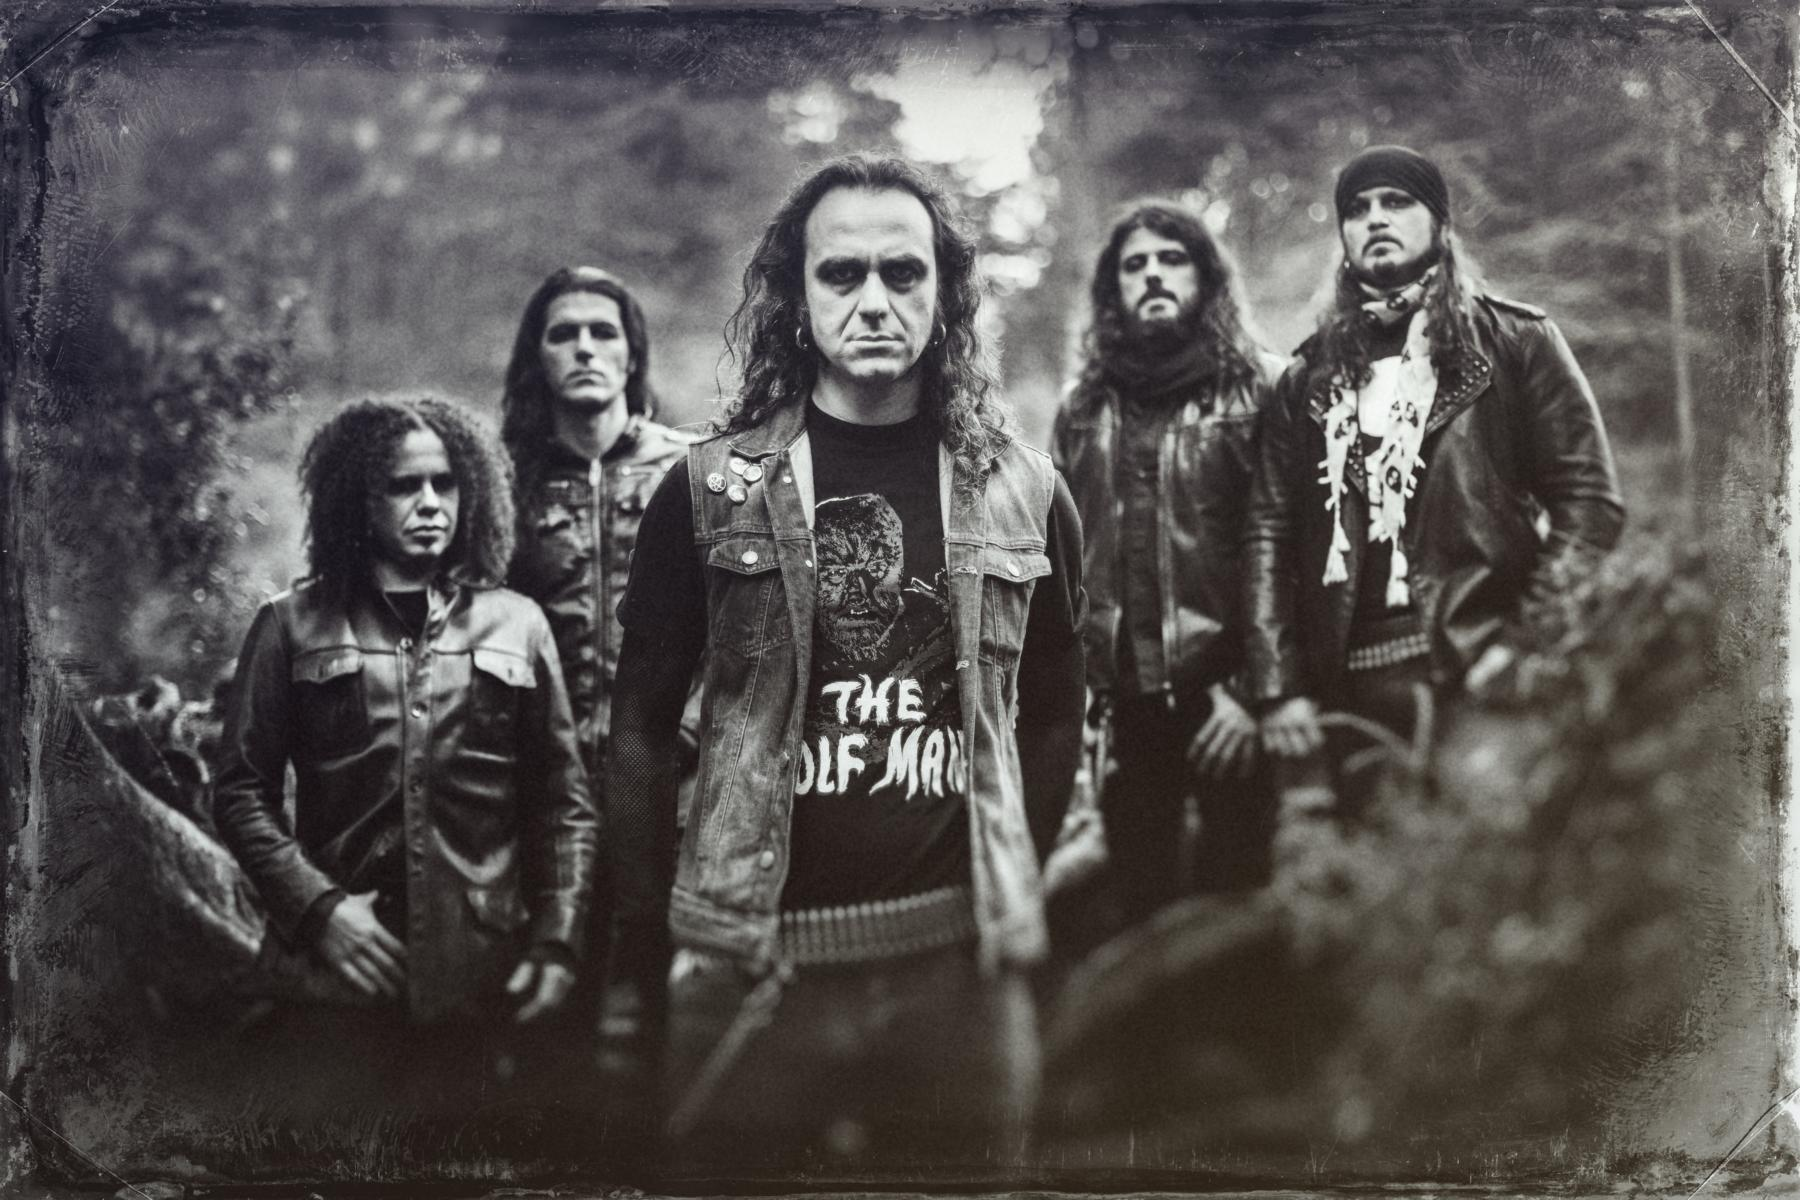 Moonspell. Fuente: www.rockstation.blog.hu